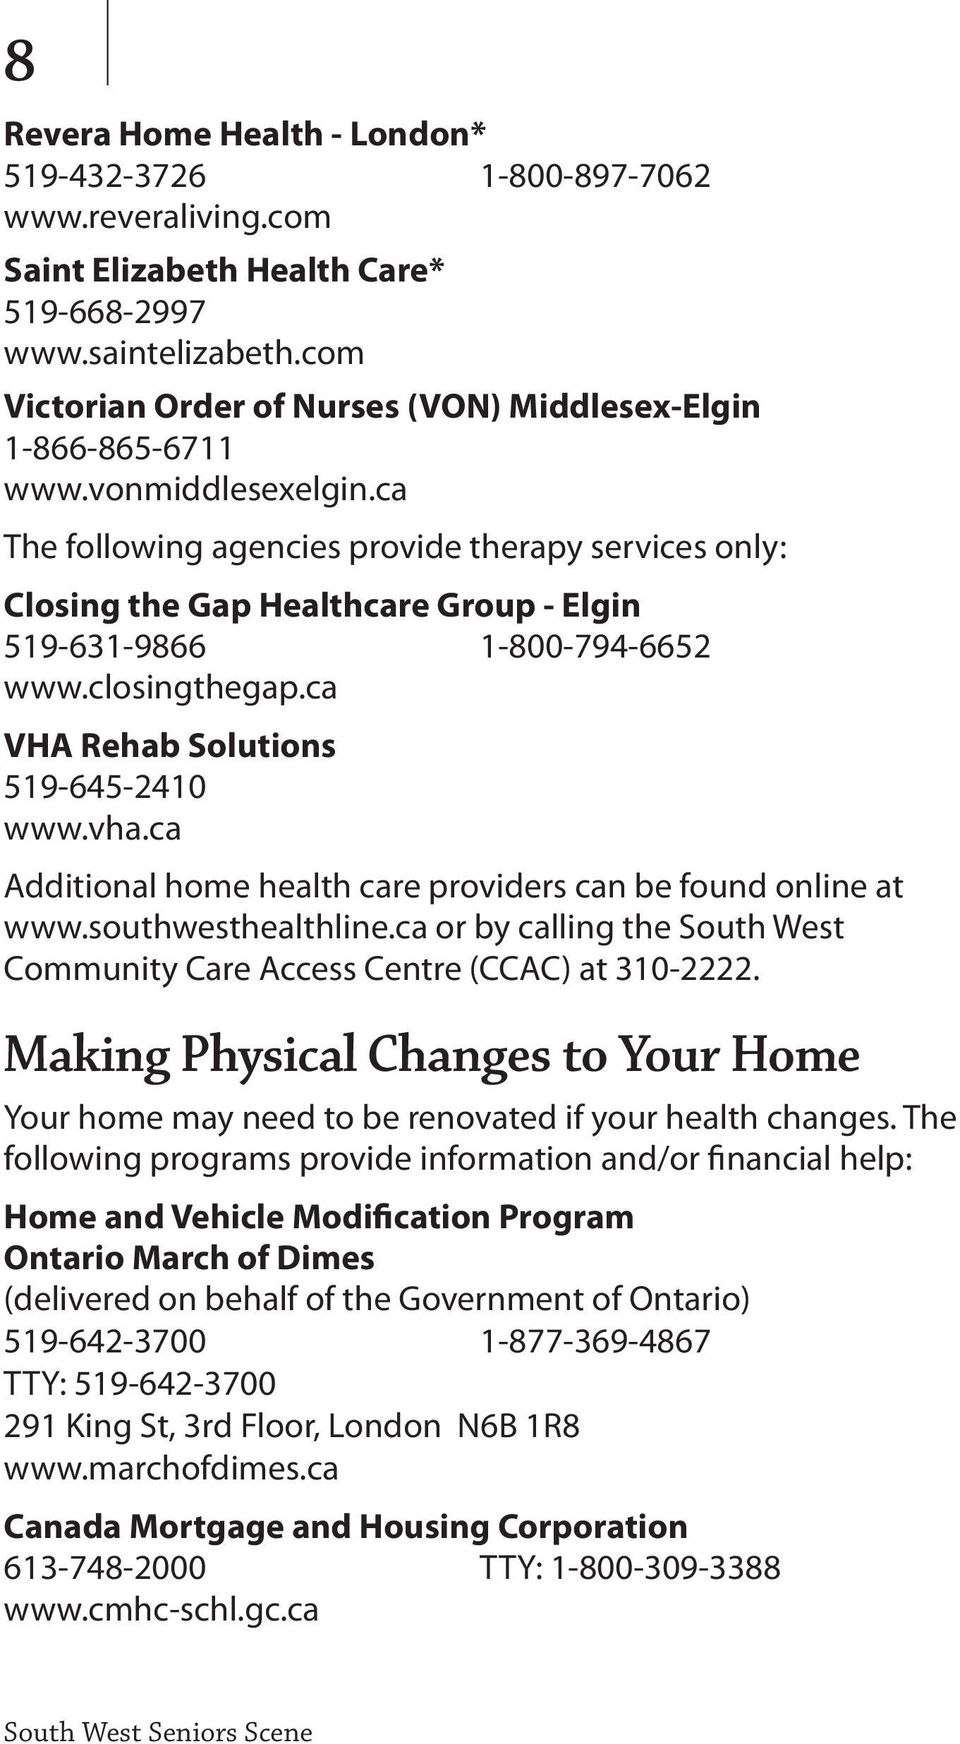 ca The following agencies provide therapy services only: Closing the Gap Healthcare Group - Elgin 519-631-9866 1-800-794-6652 www.closingthegap.ca VHA Rehab Solutions 519-645-2410 www.vha.